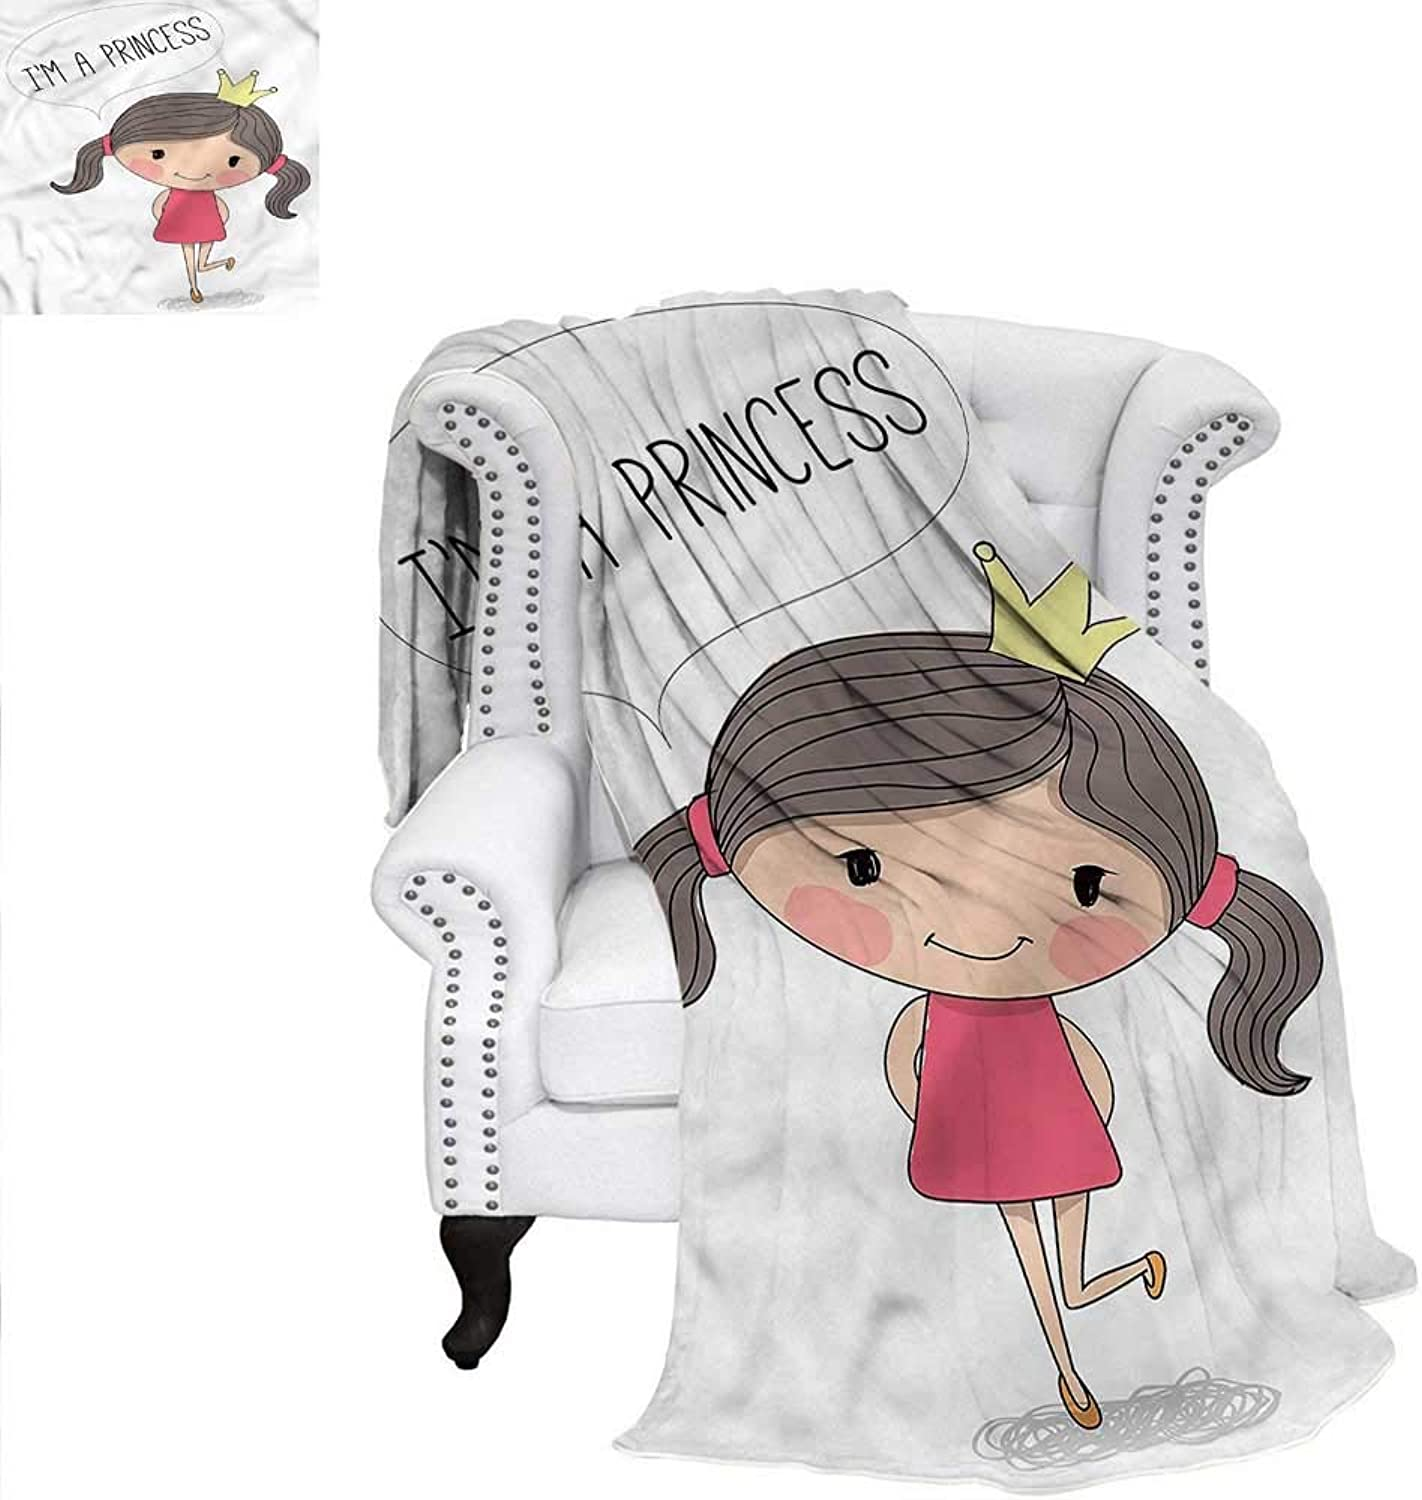 Princess Flannel Blanket Girl Reddish Cheeks Blanket 60 x36